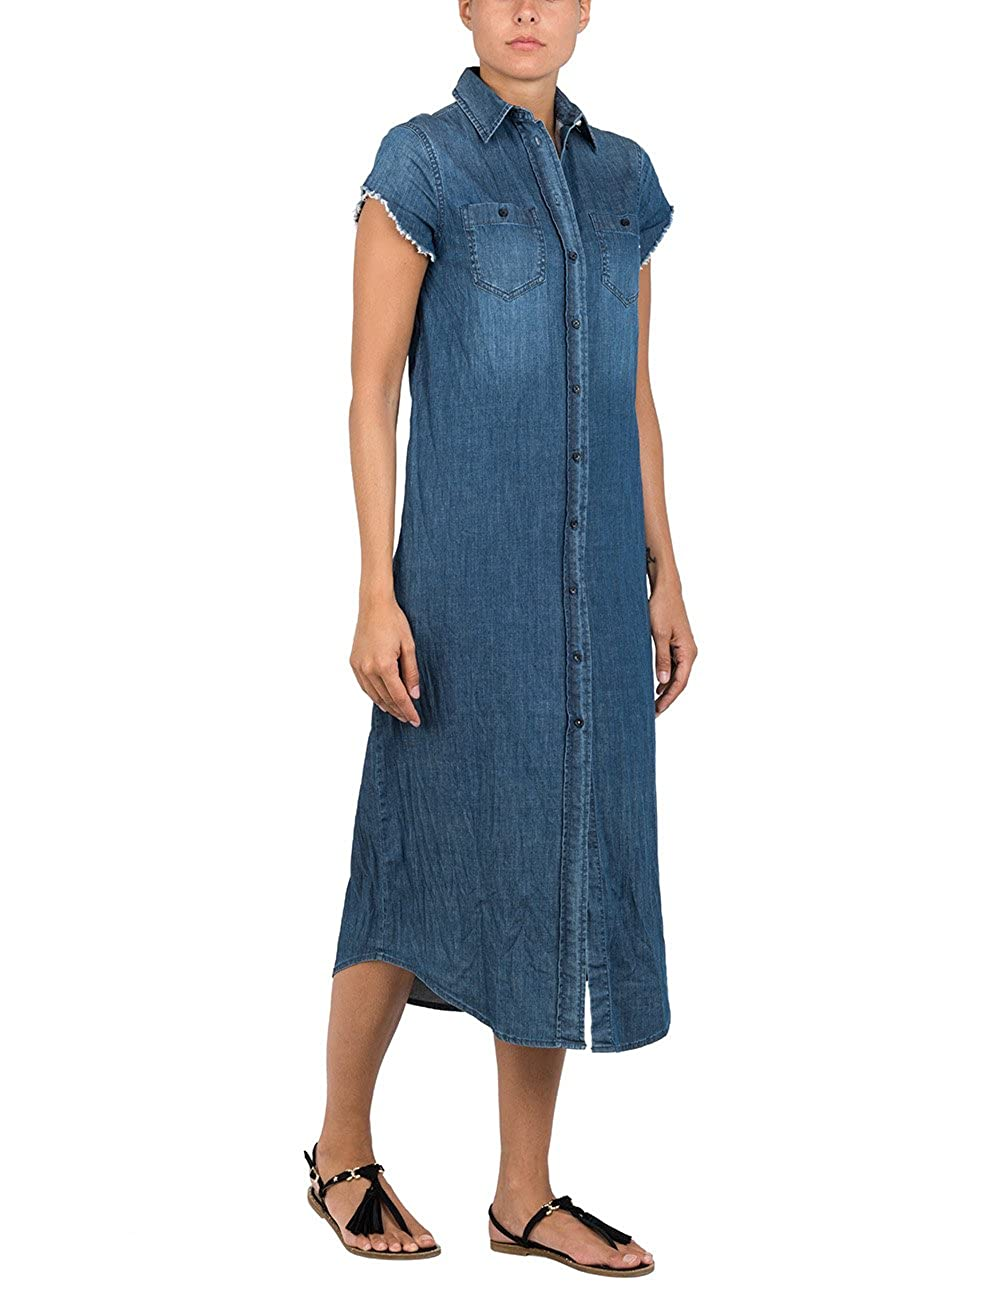 bluee Replay Women's 7 oz Stretch Denim Women's Denim Dress